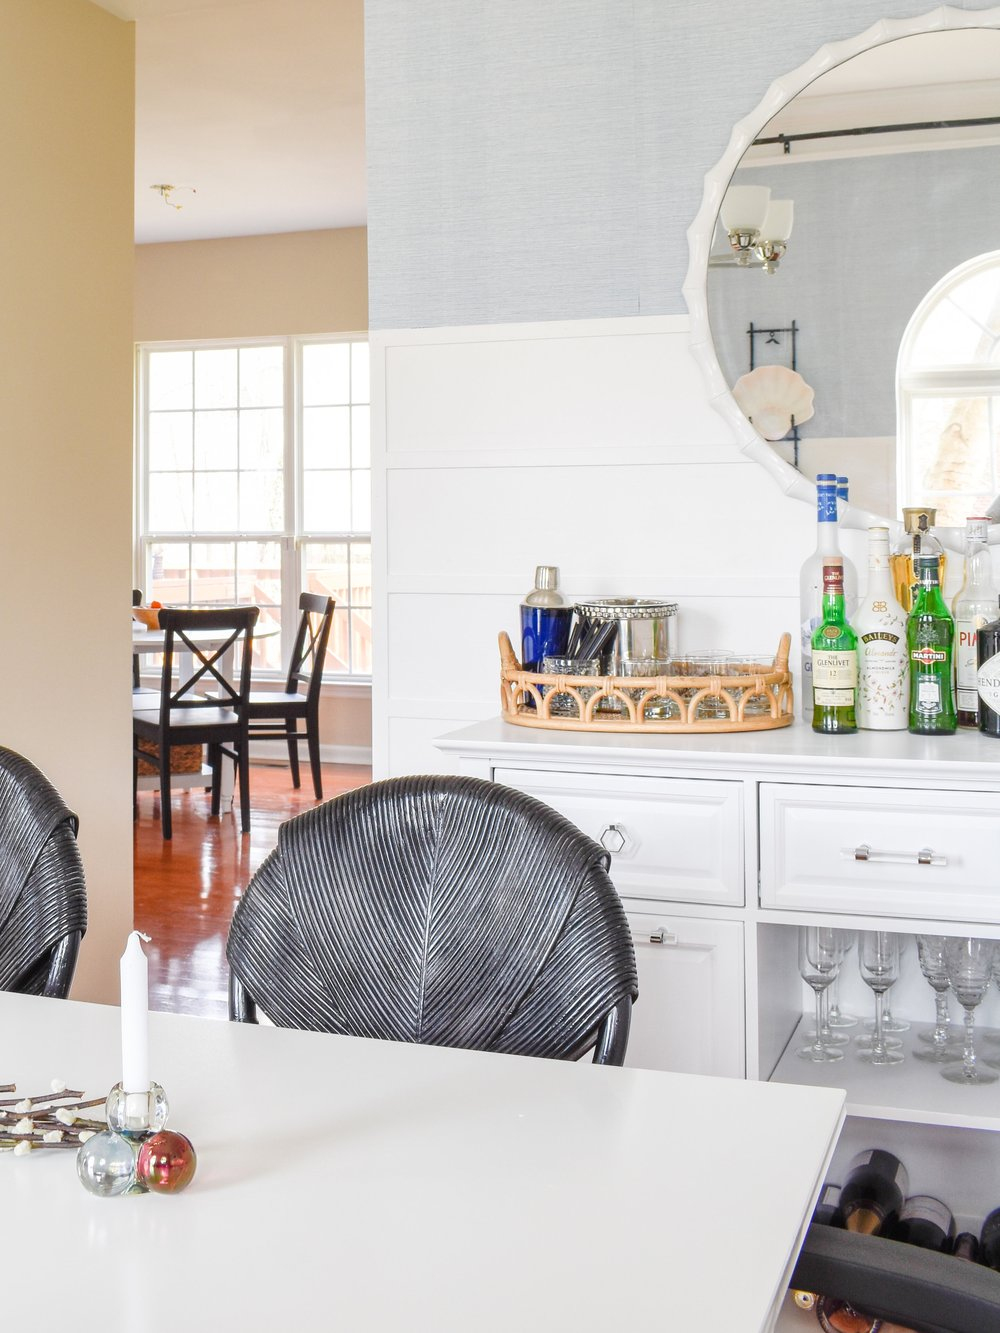 Super Simple Spring Home Decor Updates: Instead of going all out, we're really scaling back this season and loving our new, uncluttered home's feel. #springcleaning